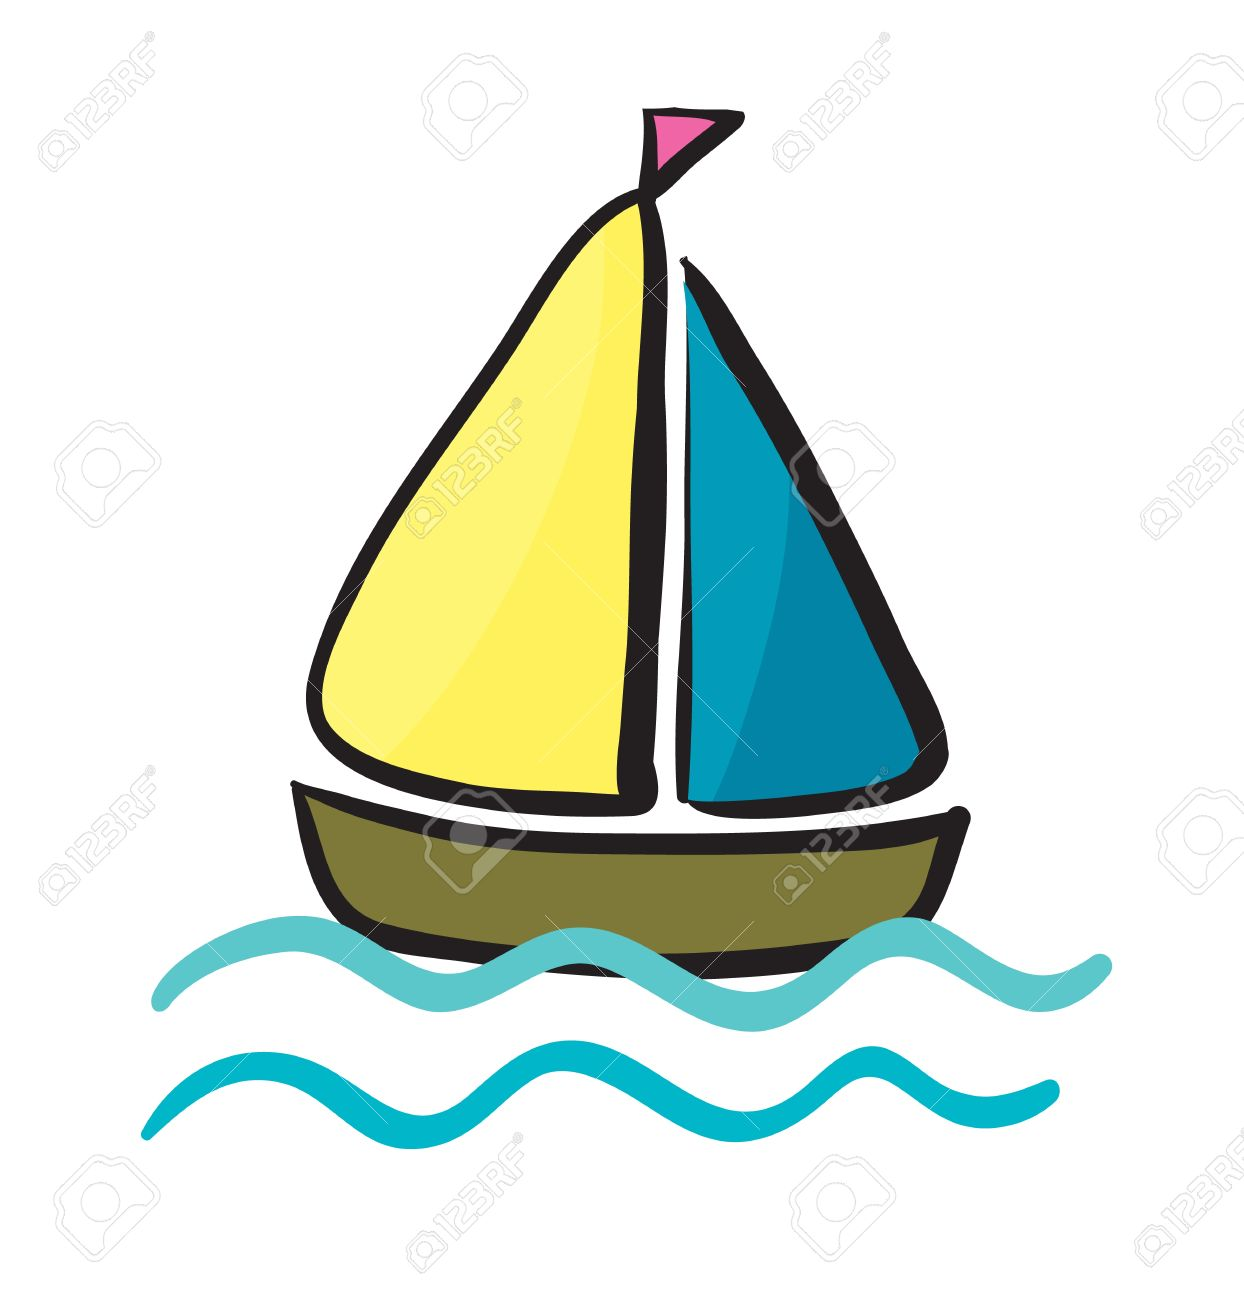 Sailing boat river pencil. Boating clipart watercraft